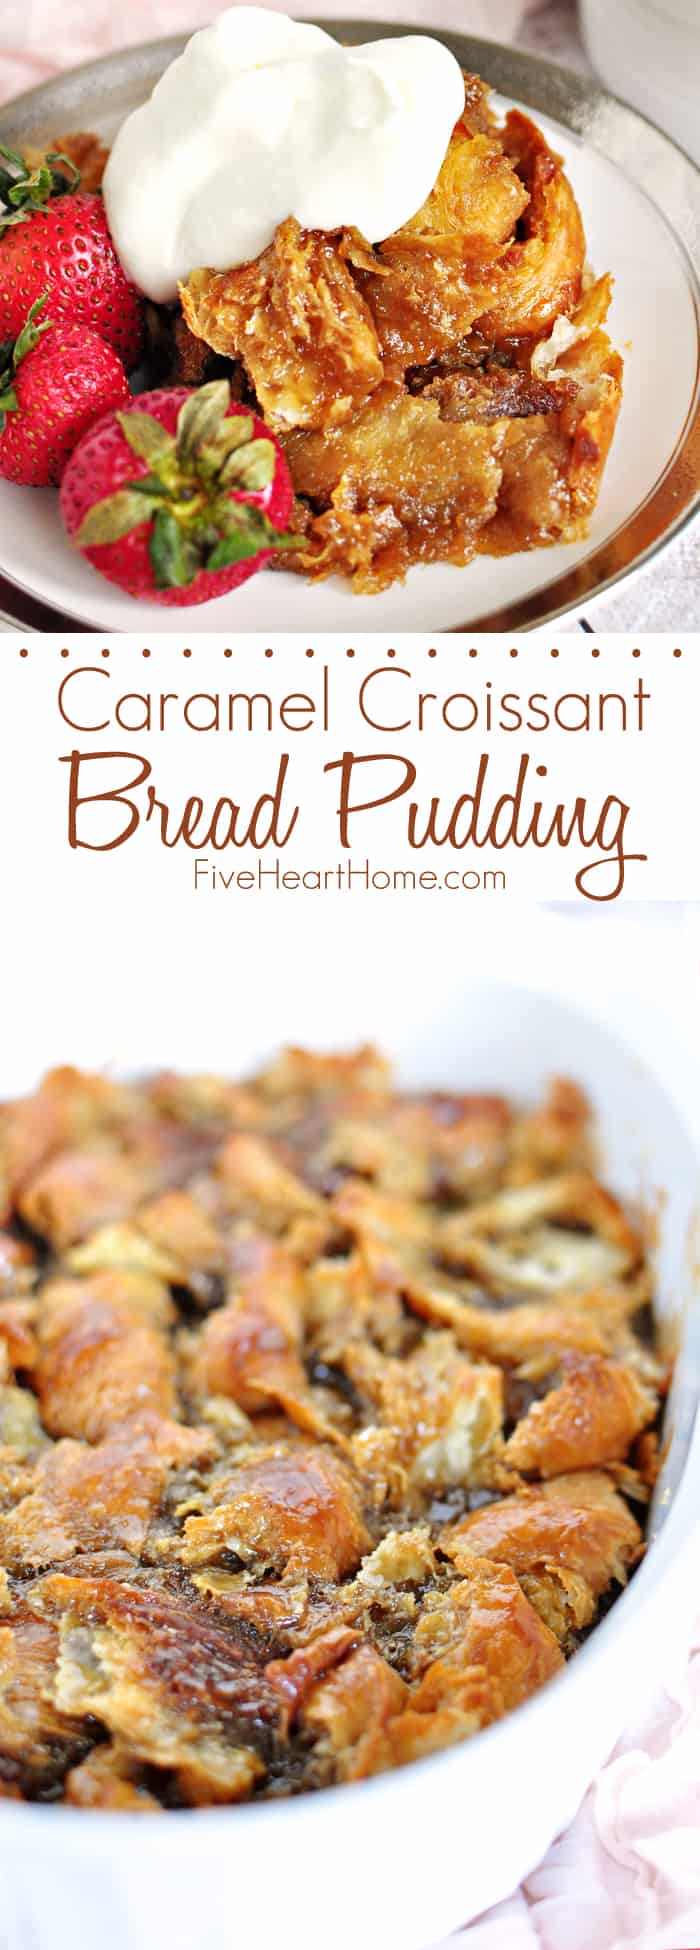 Easy Caramel Croissant Bread Pudding ~ this simple yet decadent dessert features a homemade, 5-minute caramel sauce and leftover buttery croissants | FiveHeartHome.com via @fivehearthome